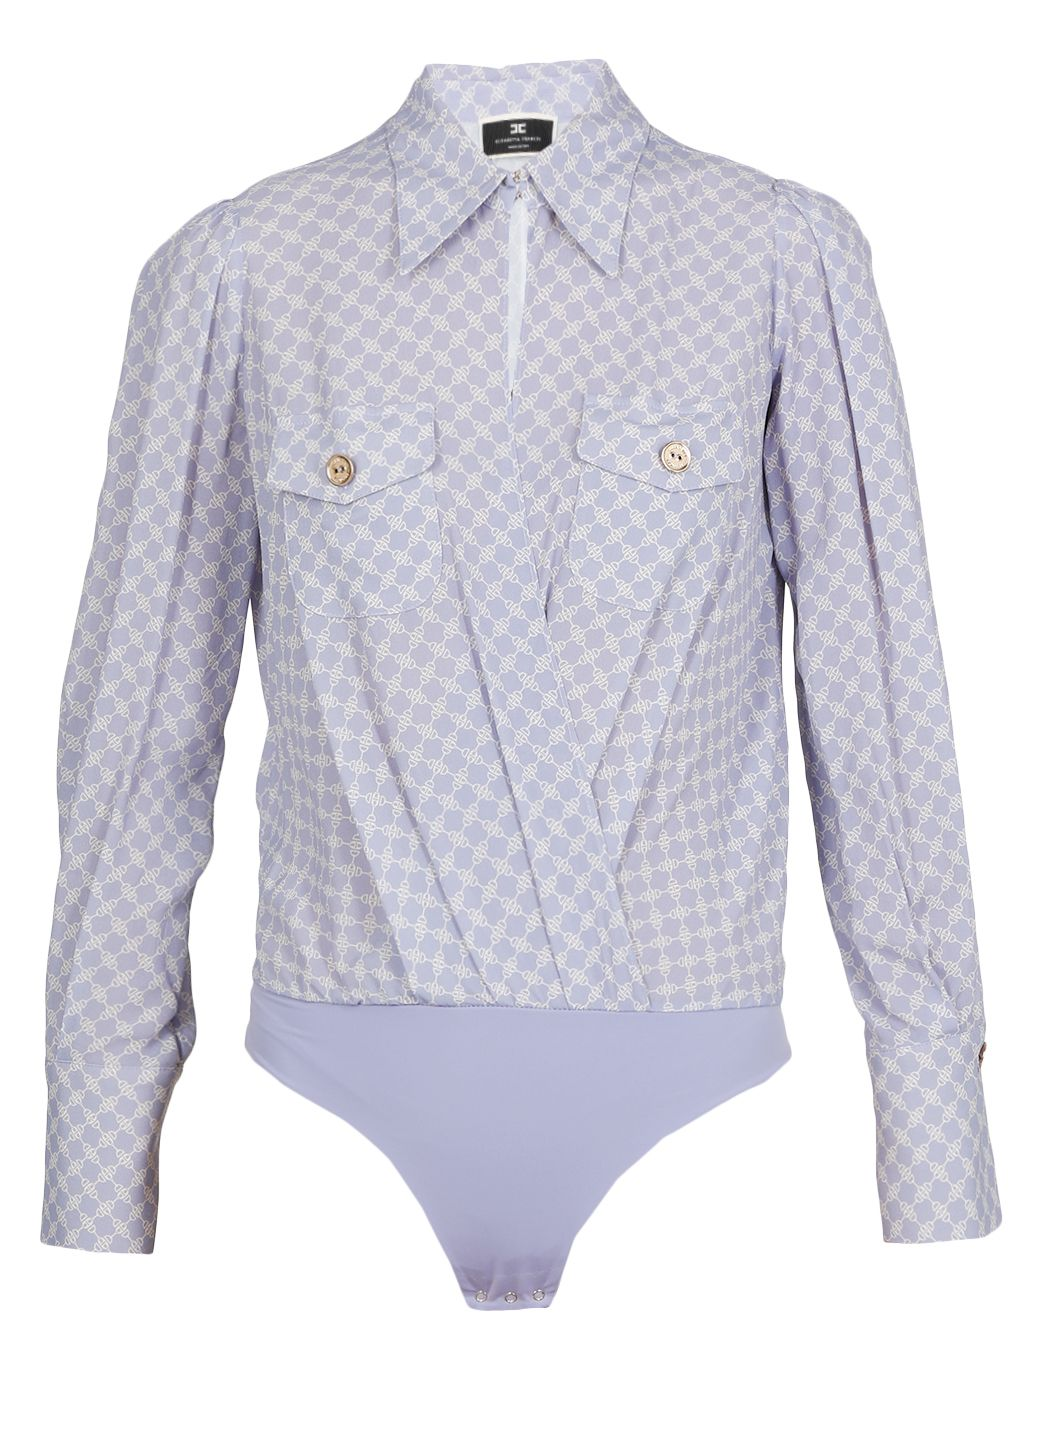 Camicia a body in georgette di viscosa